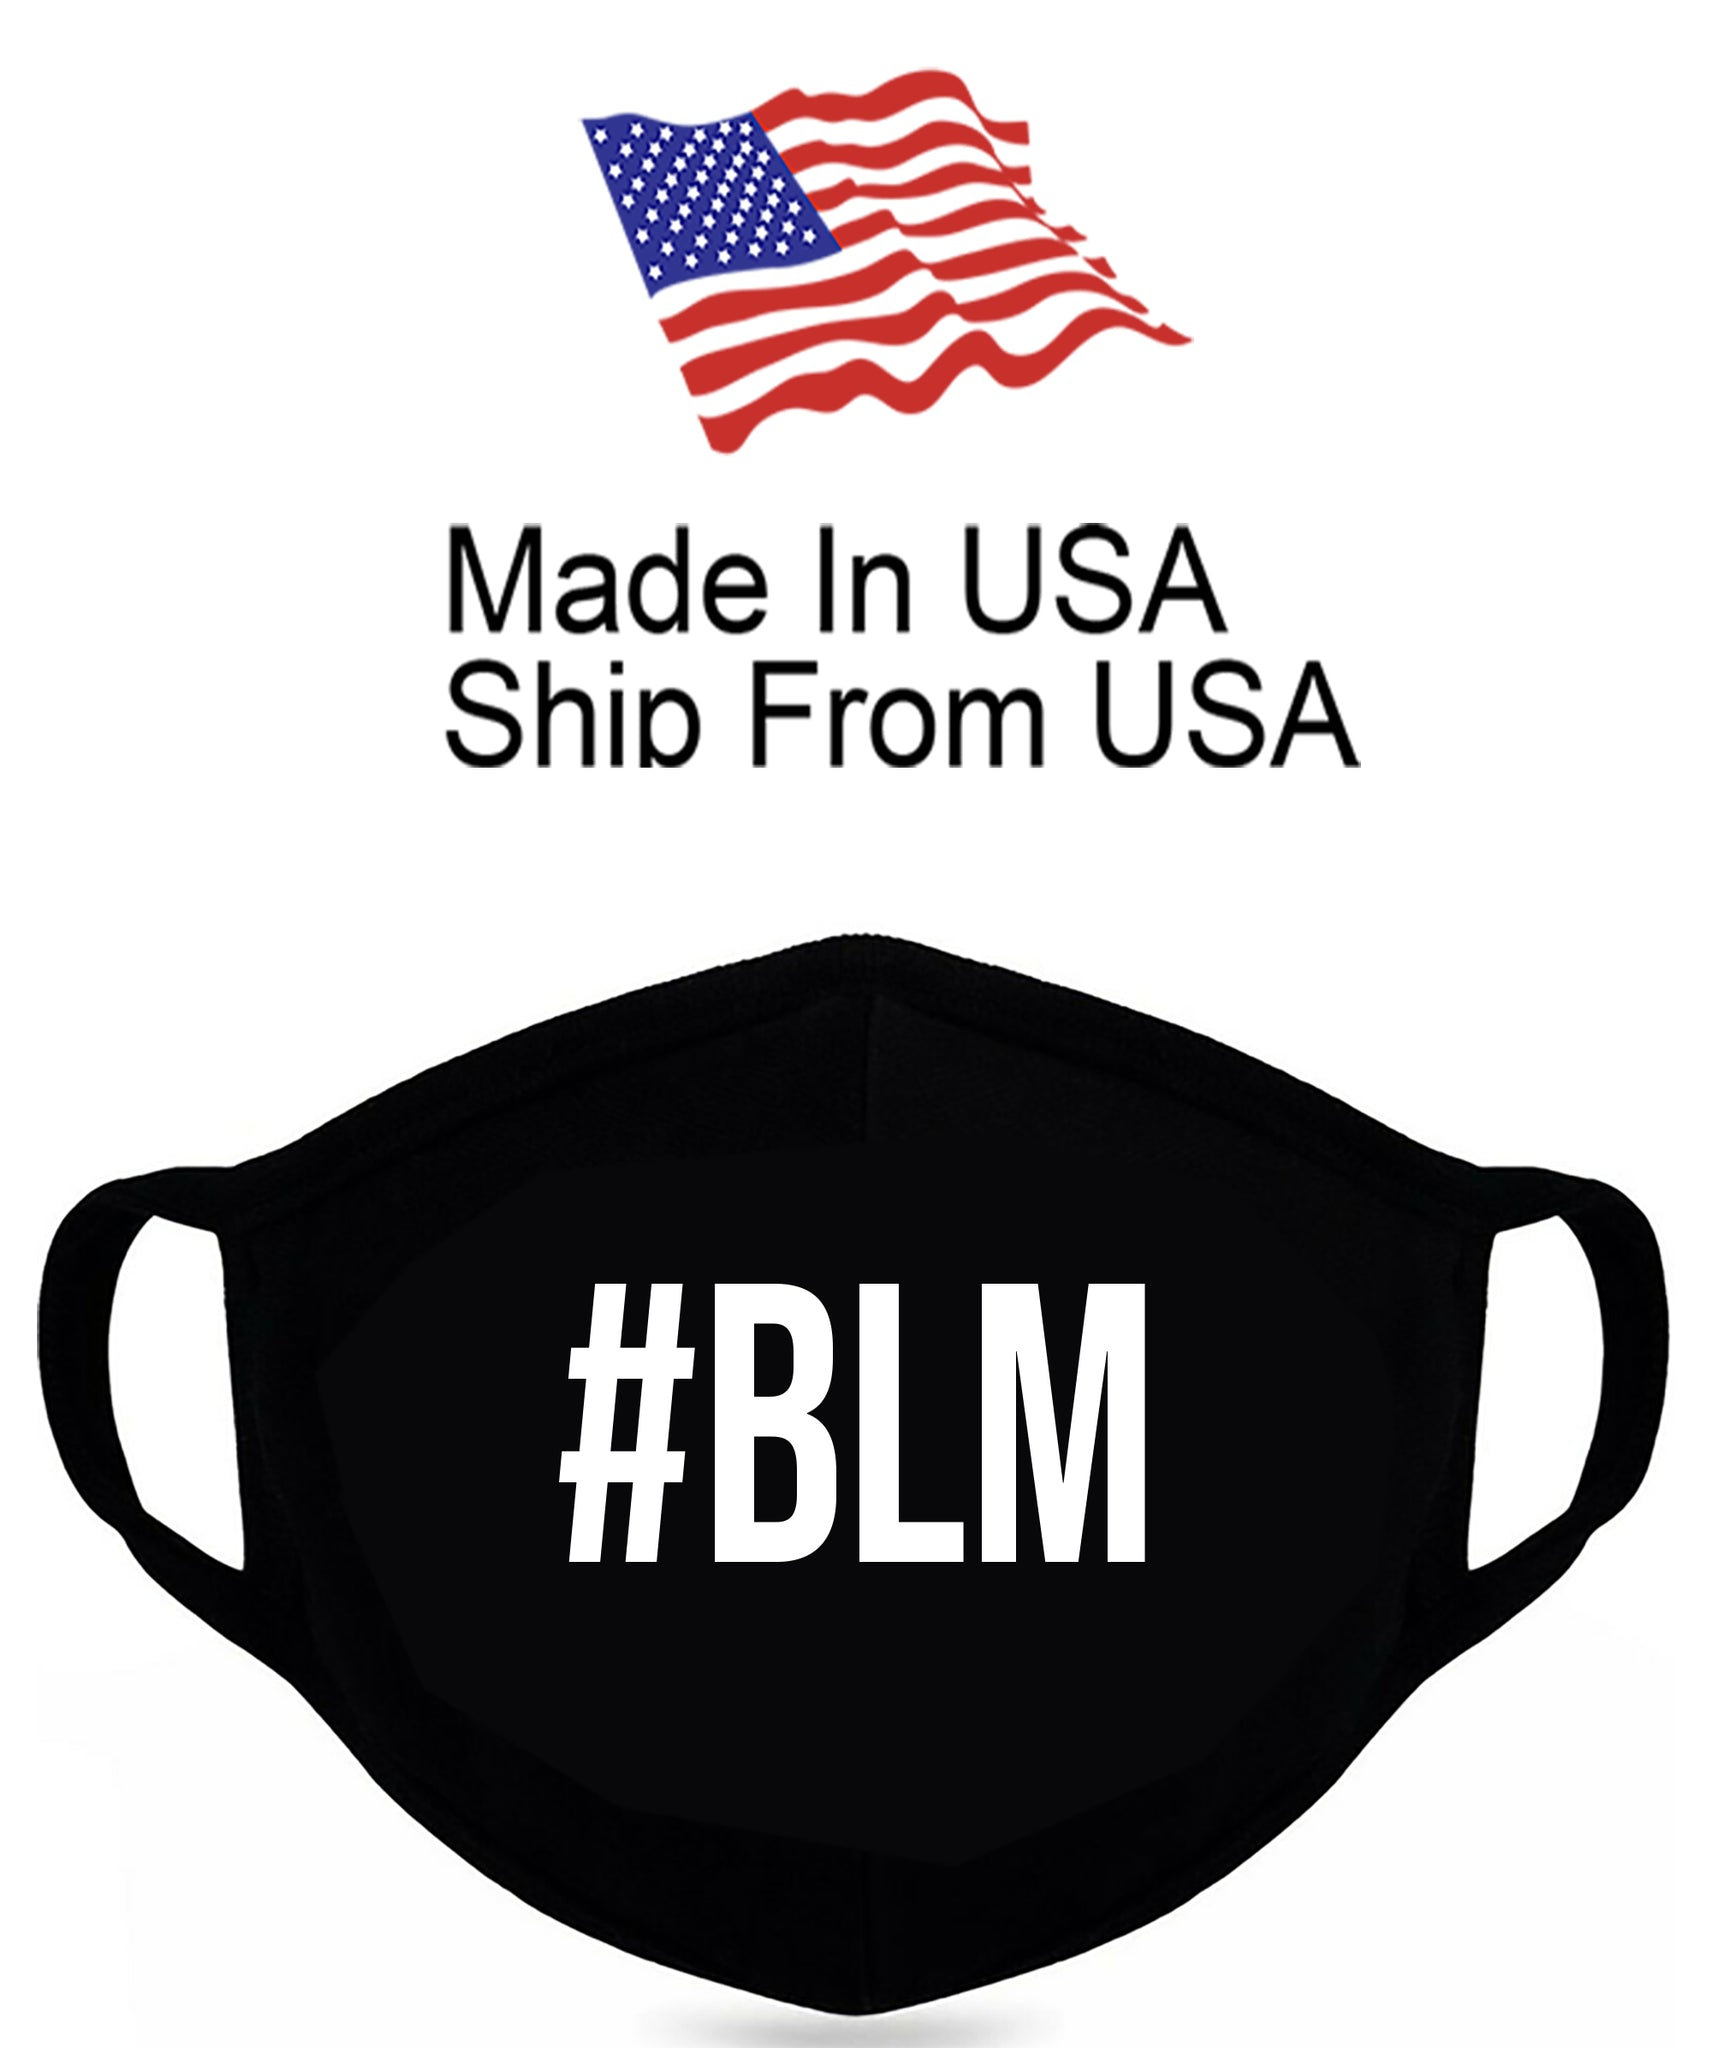 #BLM Cotton Face Mask